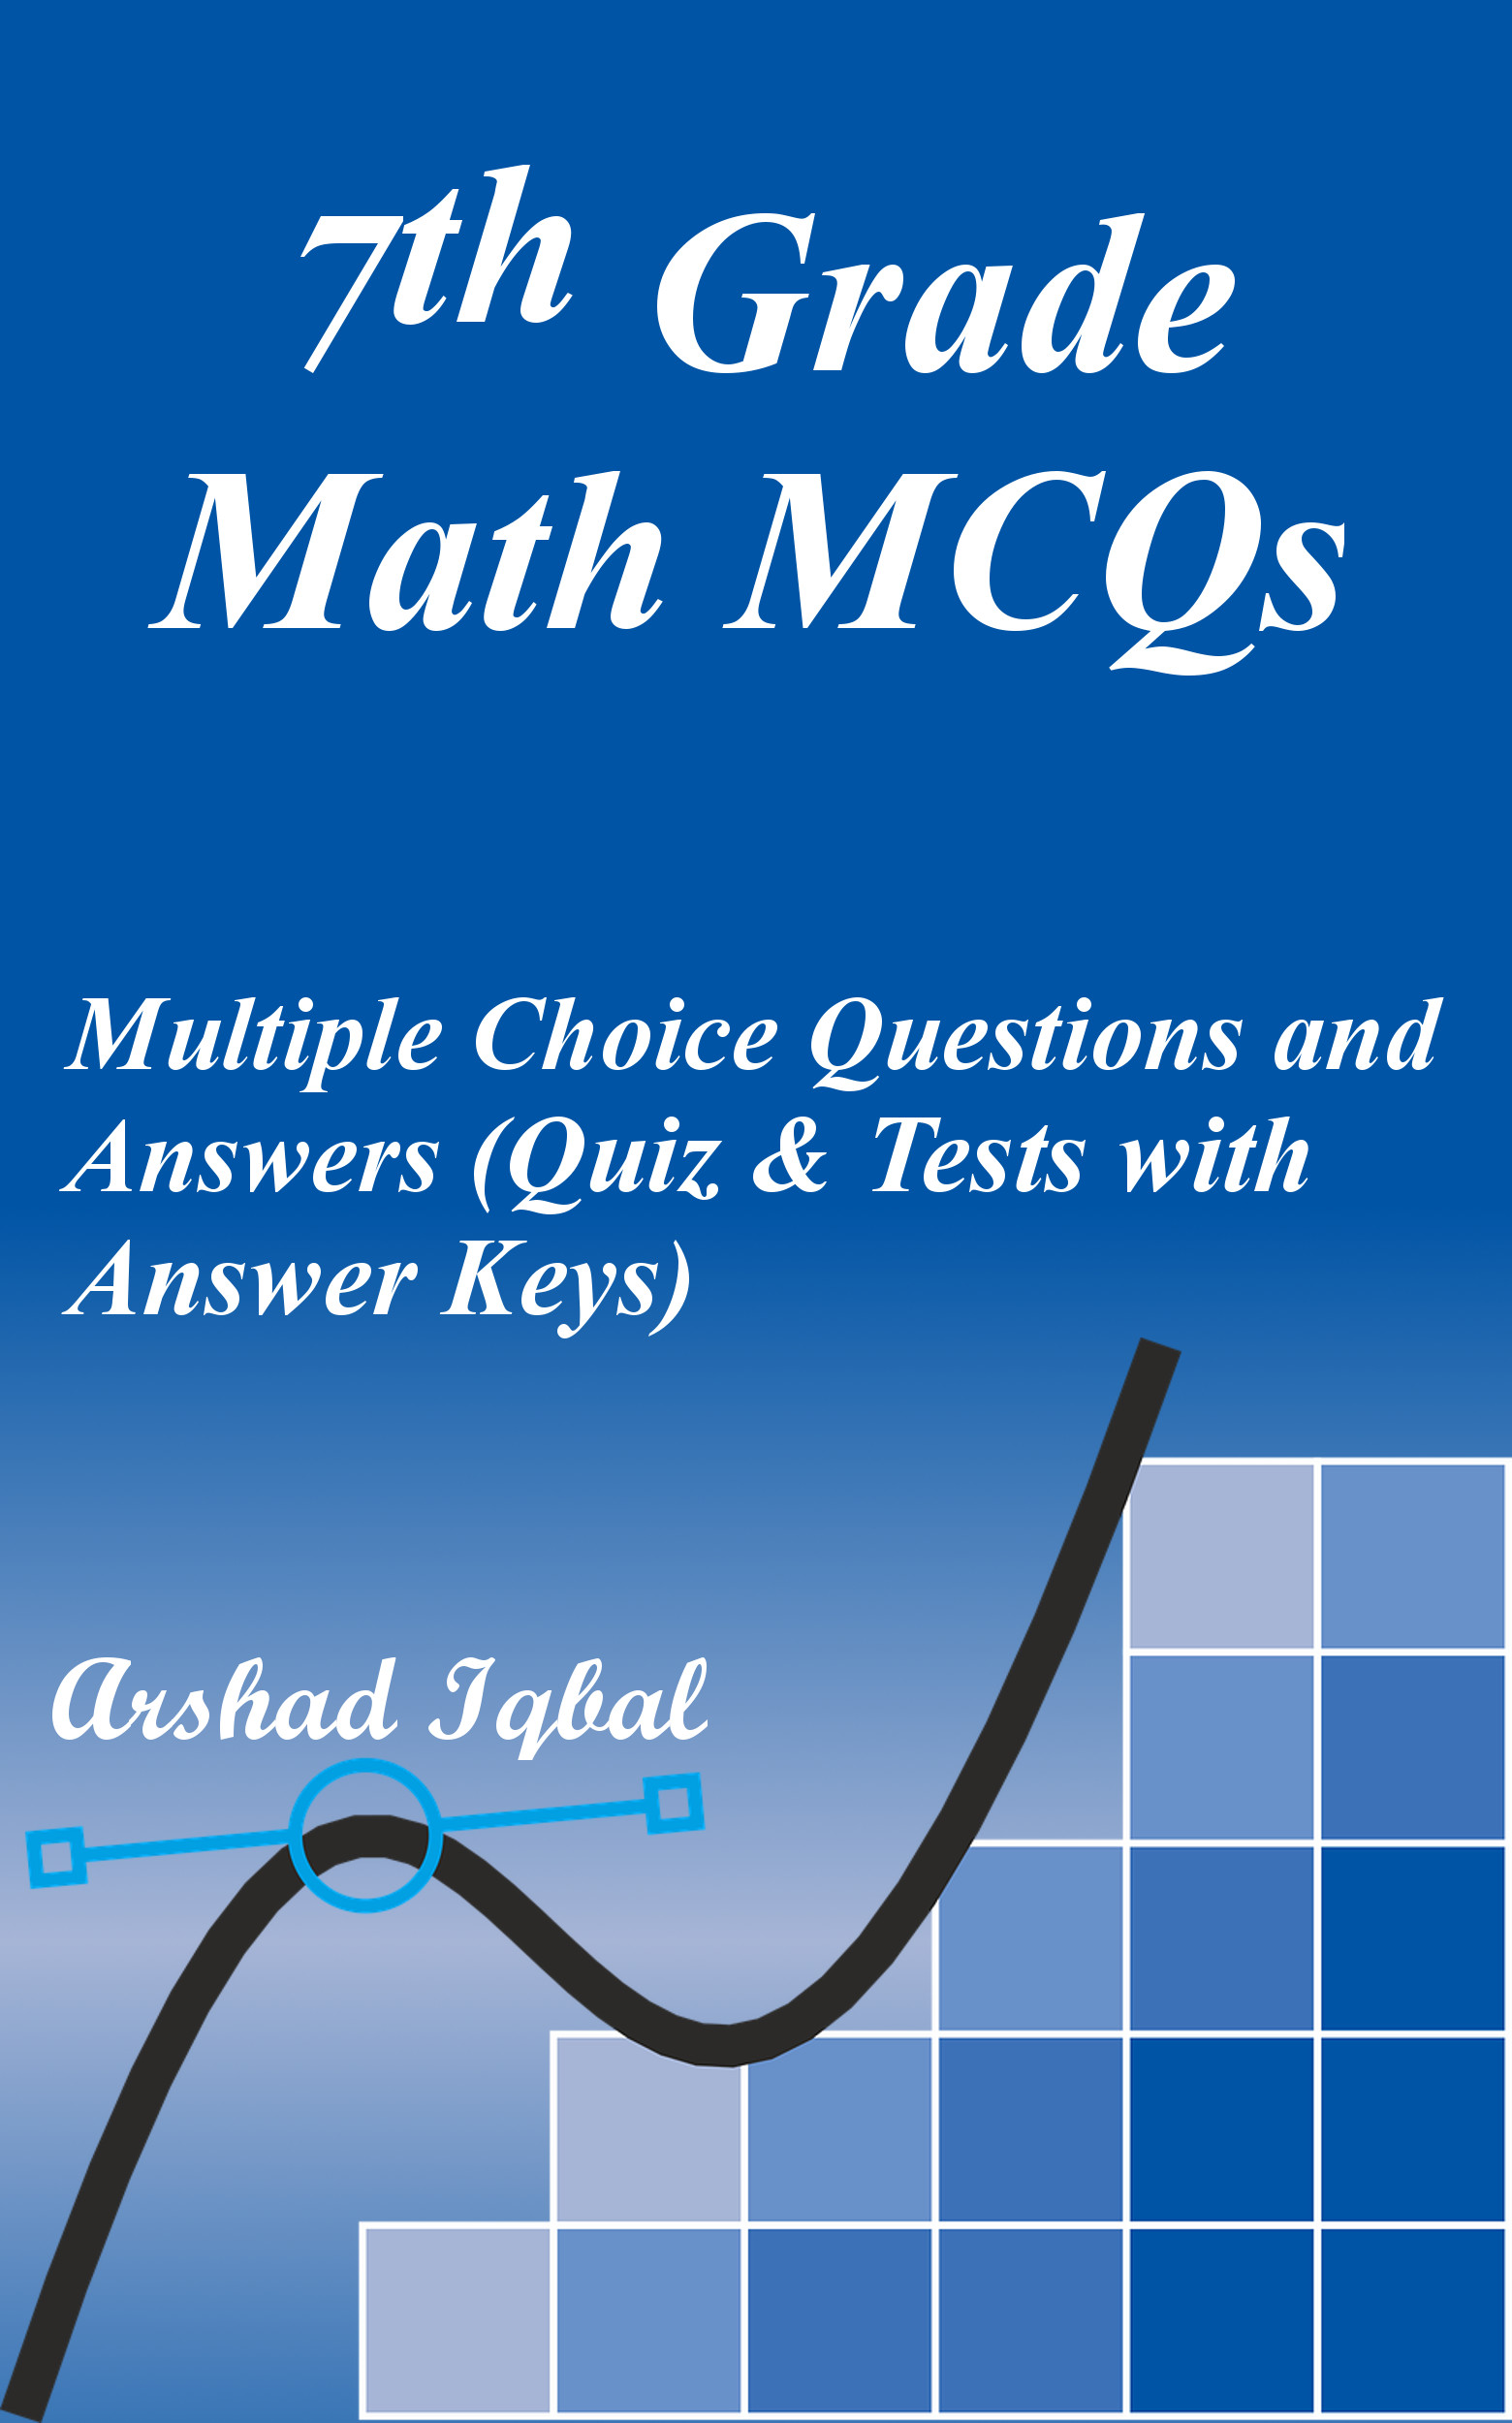 Grade 7 Math MCQs: Multiple Choice Questions and Answers (Quiz & Tests with Answer Keys)